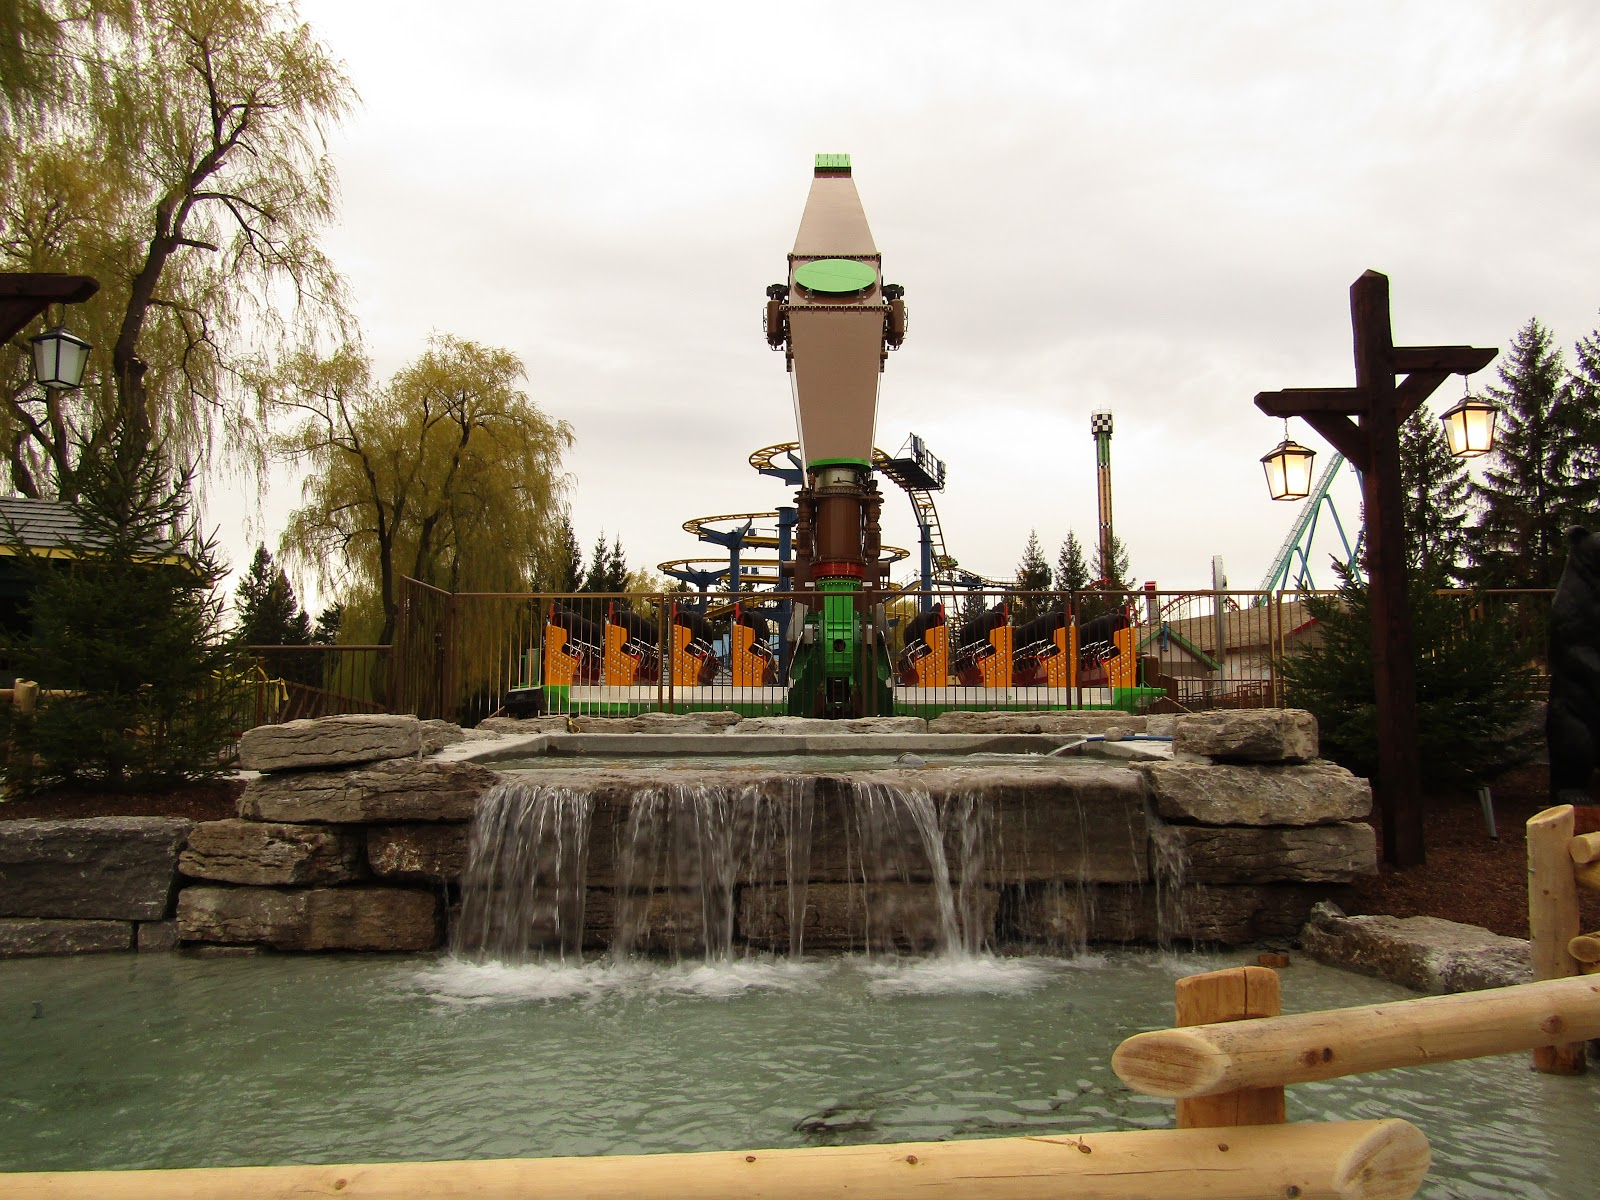 The all-new for 2017 Soaring Timbers. Here you can see the spectacular waterfall feature in front of the ride. Soaring Timbers painted brown and green and has yellow seats.